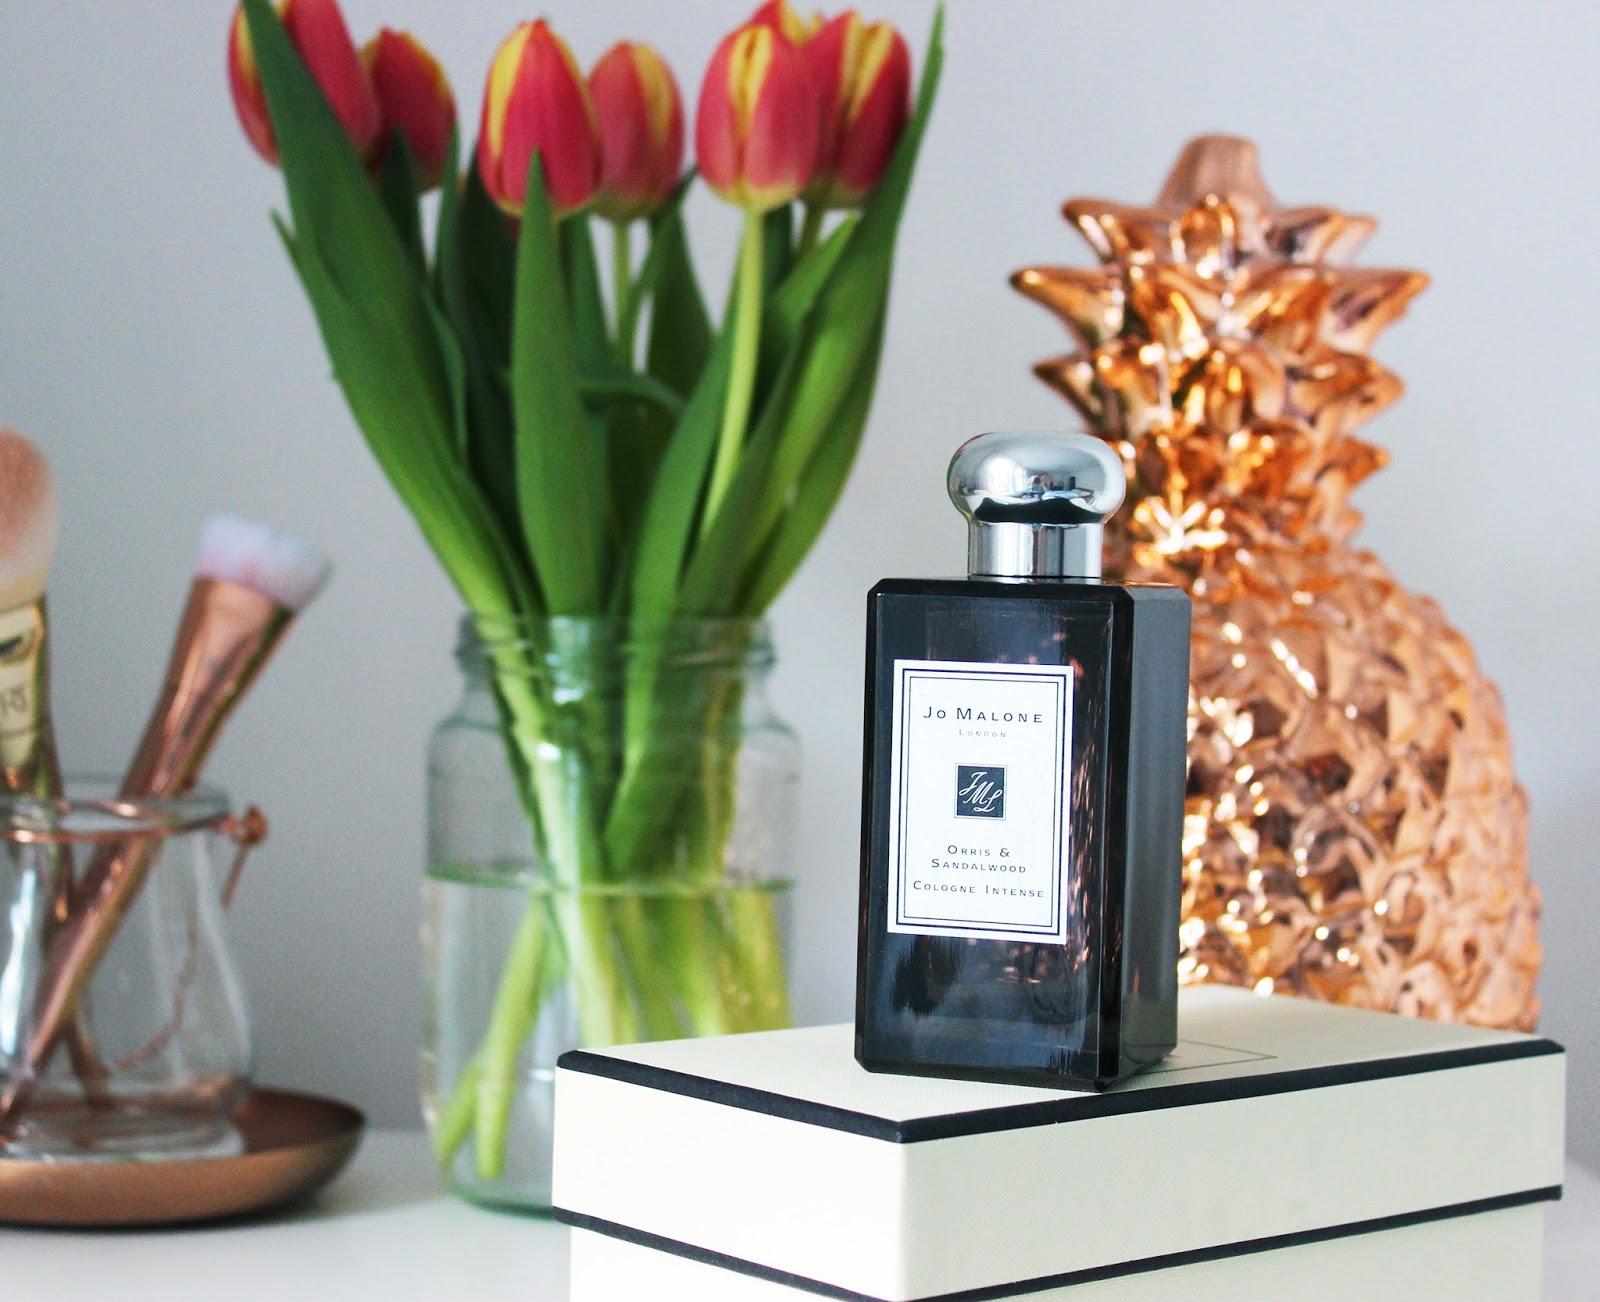 Jo Malone Cologne Intense Orris & Sandalwood review